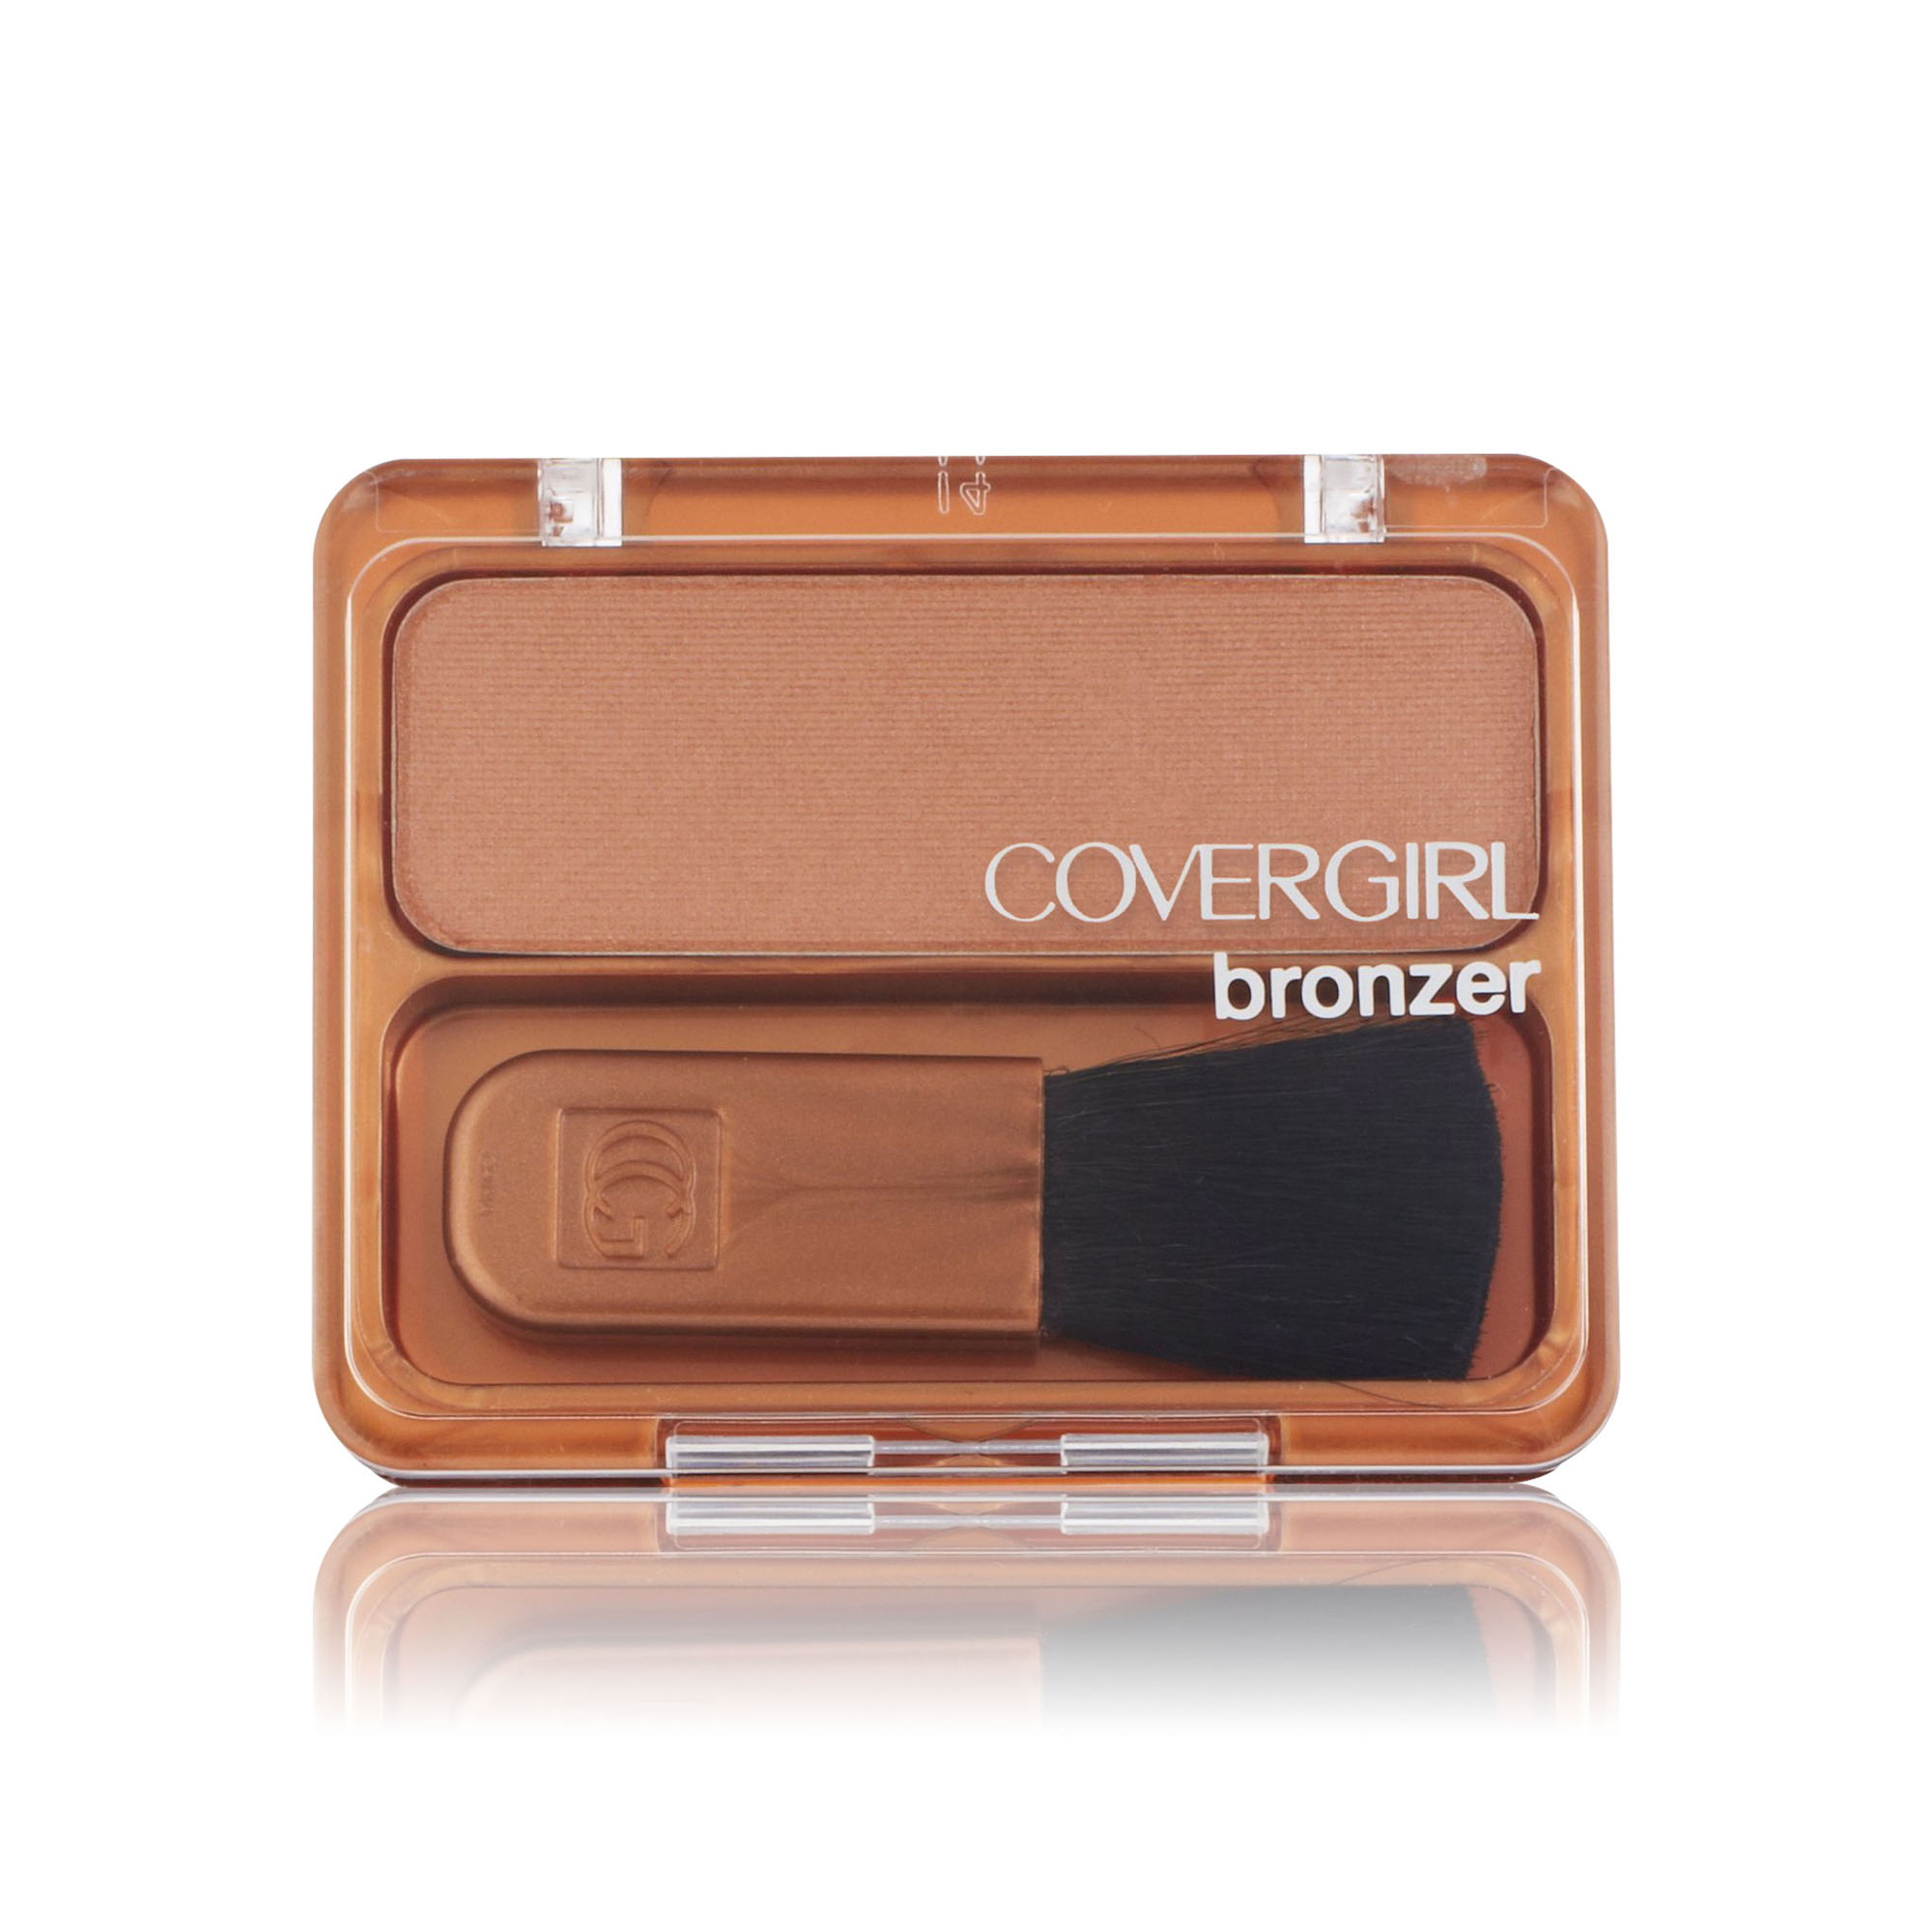 COVERGIRL Cheekers Blendable Powder Bronzer, Copper Radiance